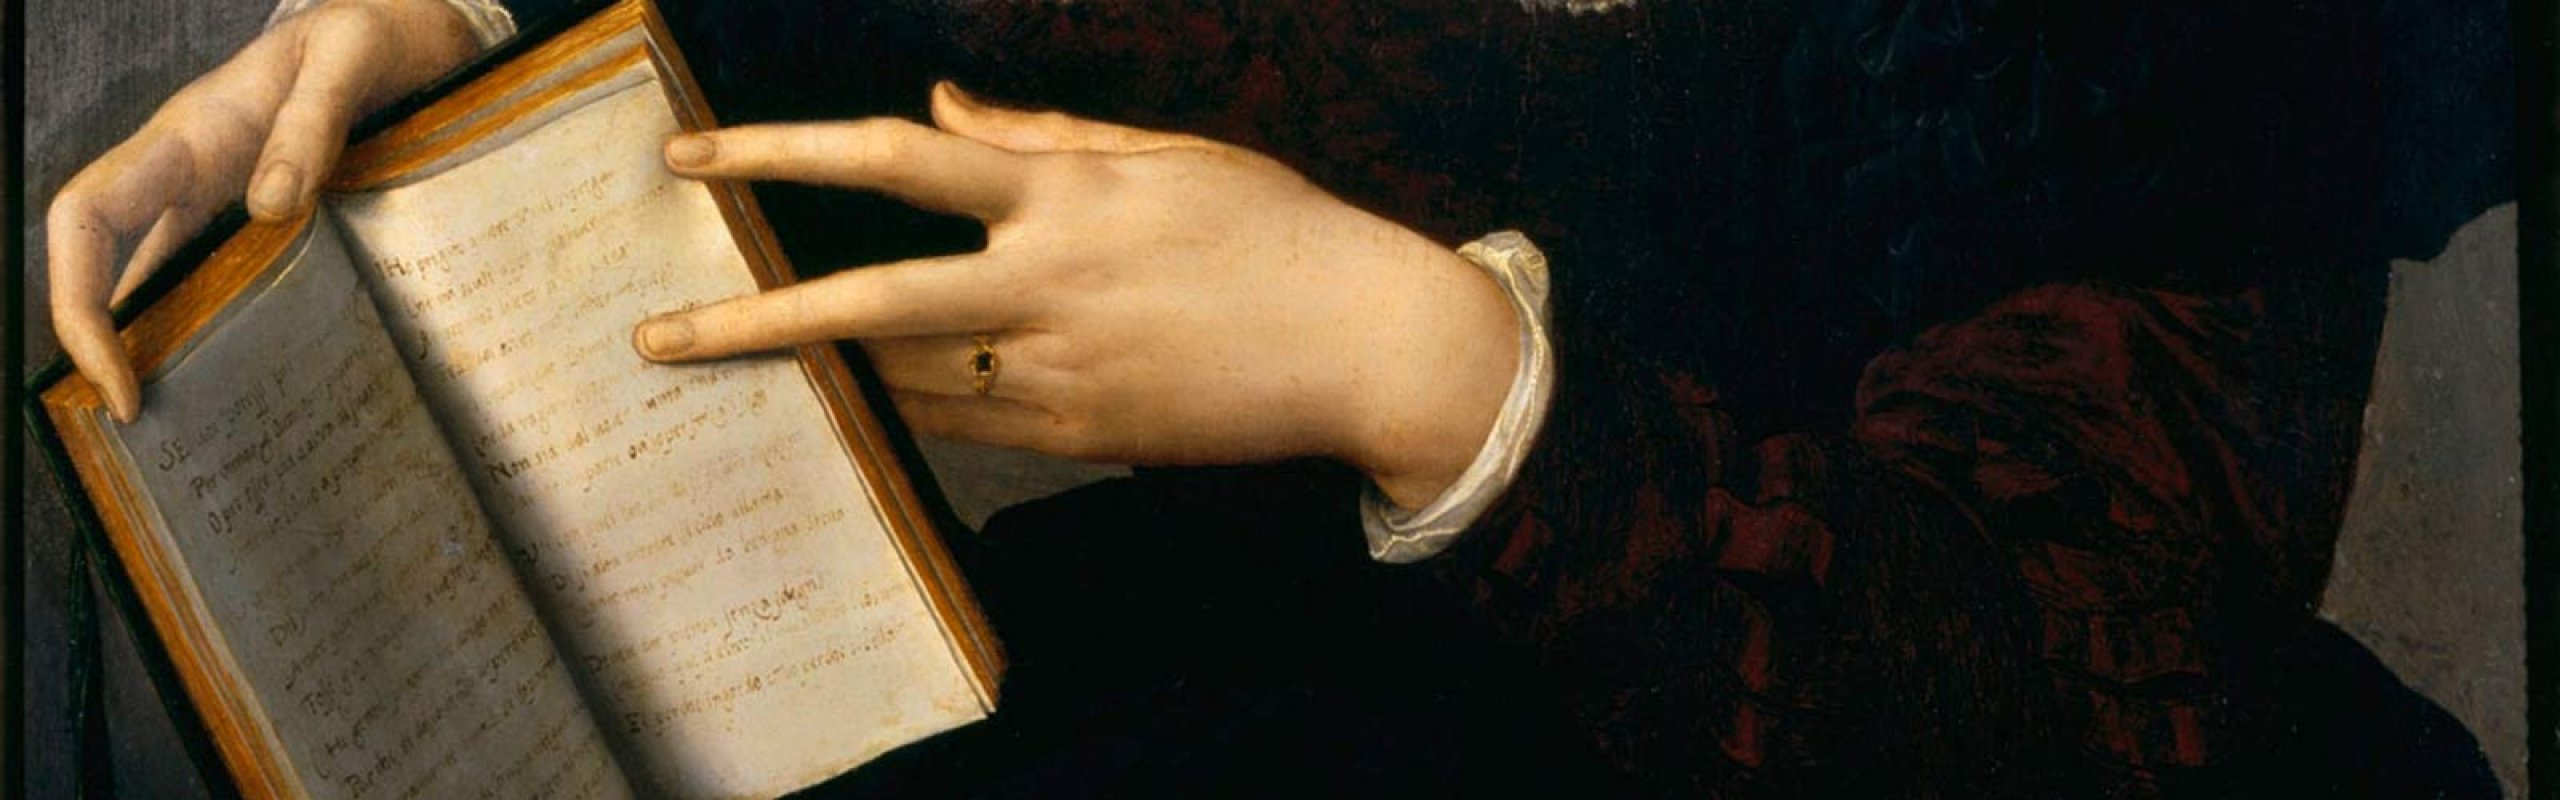 Nature's secretaries: Renaissance women and the art of writing artless letters